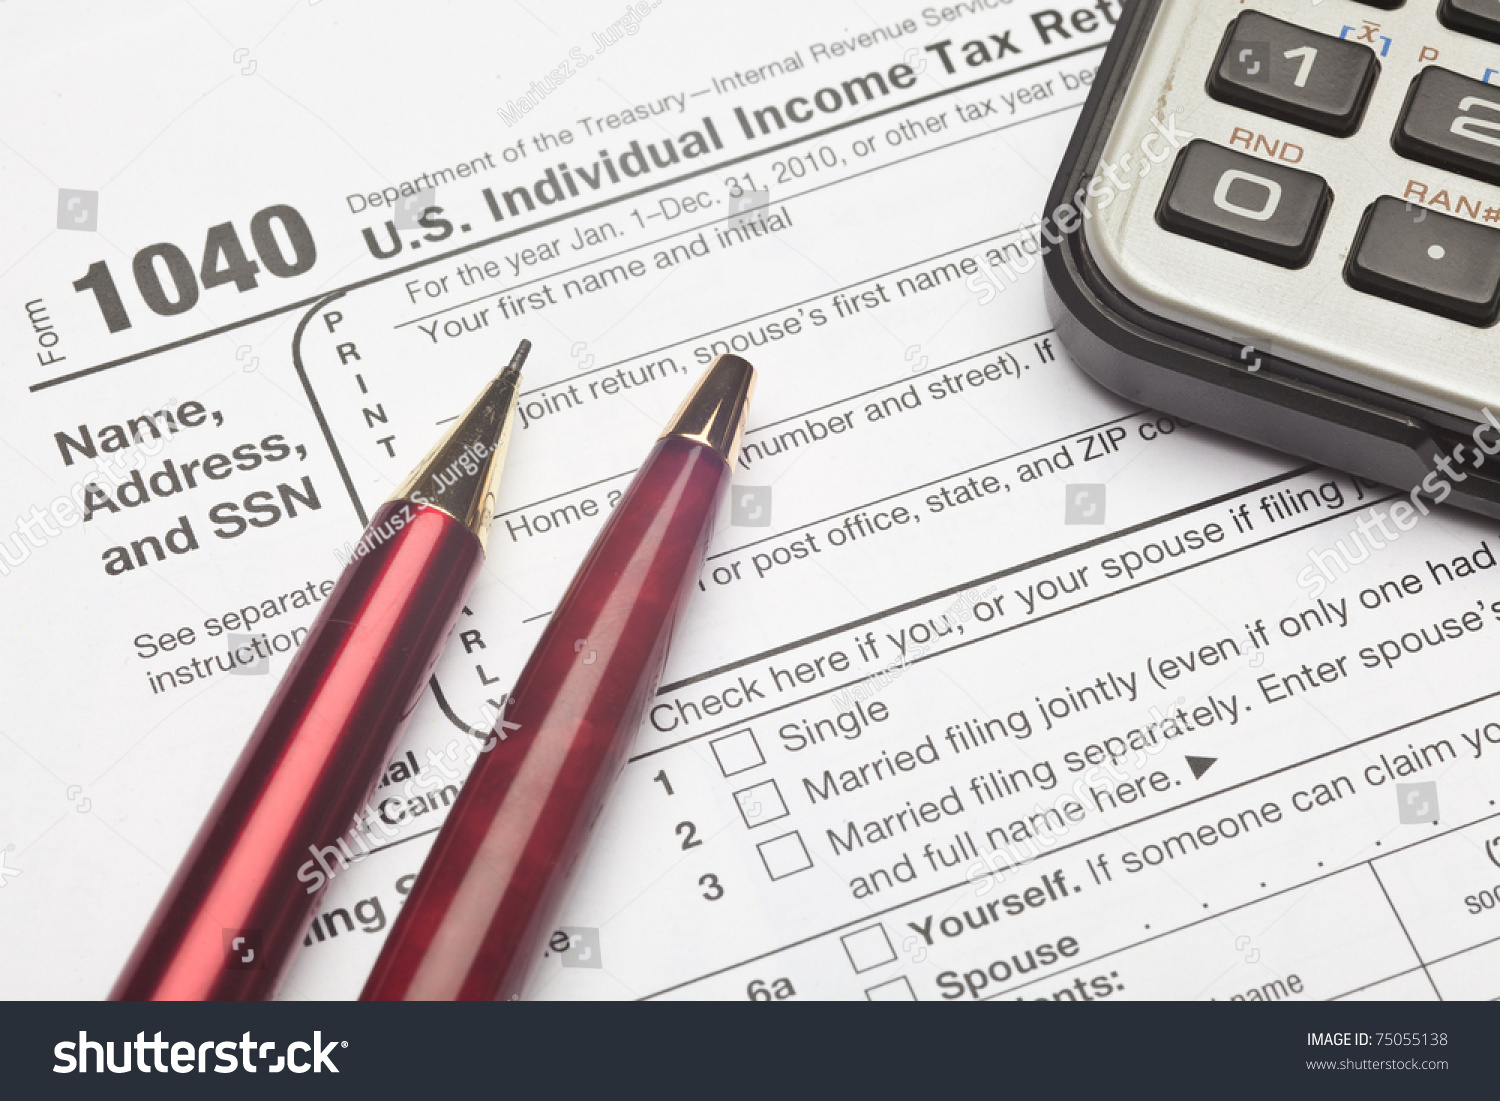 Form 1040 us individual income tax stock photo 75055138 shutterstock the form 1040 us individual income tax return is the starting form for personal falaconquin